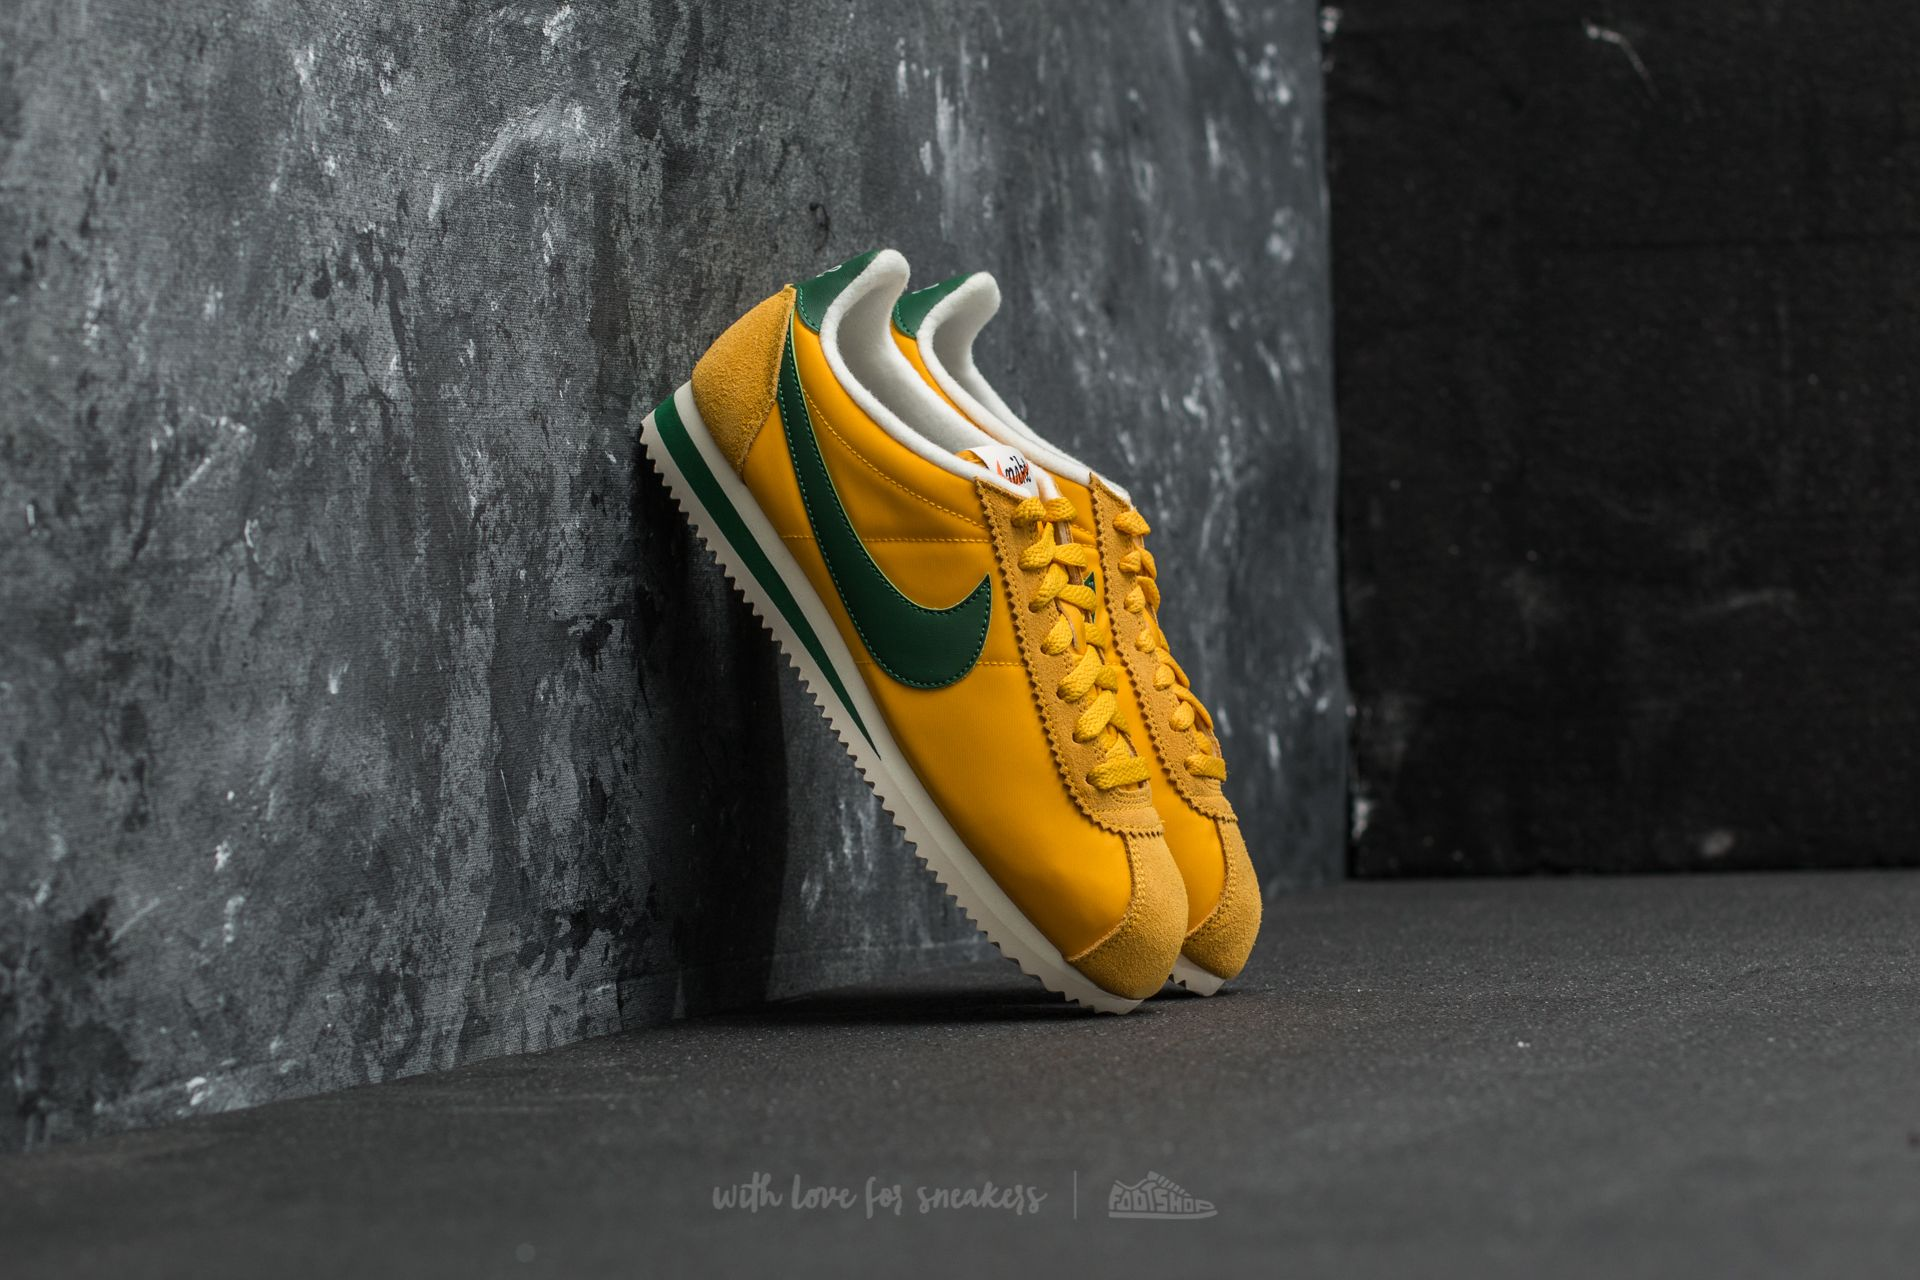 official photos 594f5 4f90b Nike Classic Cortez Nylon Premium Yellow Ochre/ Gorge Green ...